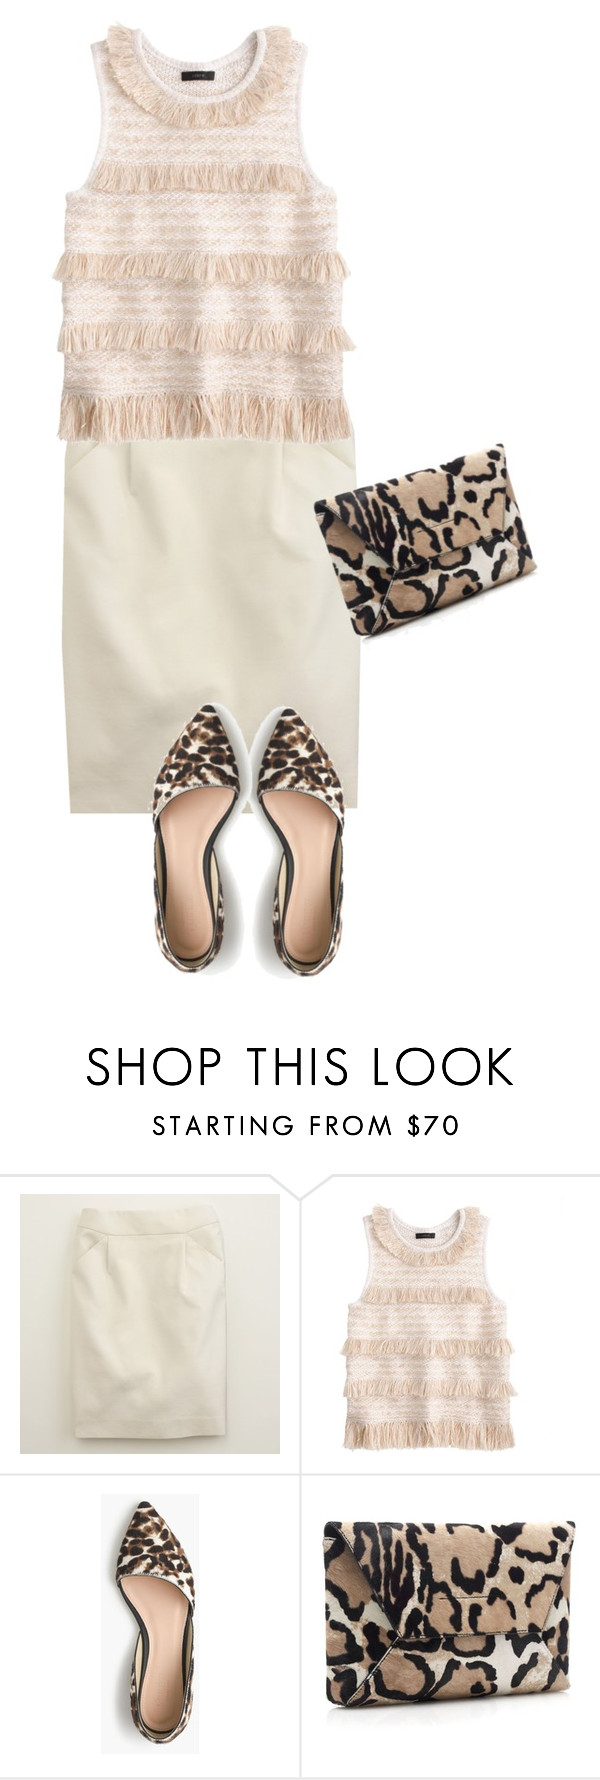 """""""Raffia And Animal Print"""" by dauchka22 ❤ liked on Polyvore featuring J.Crew"""